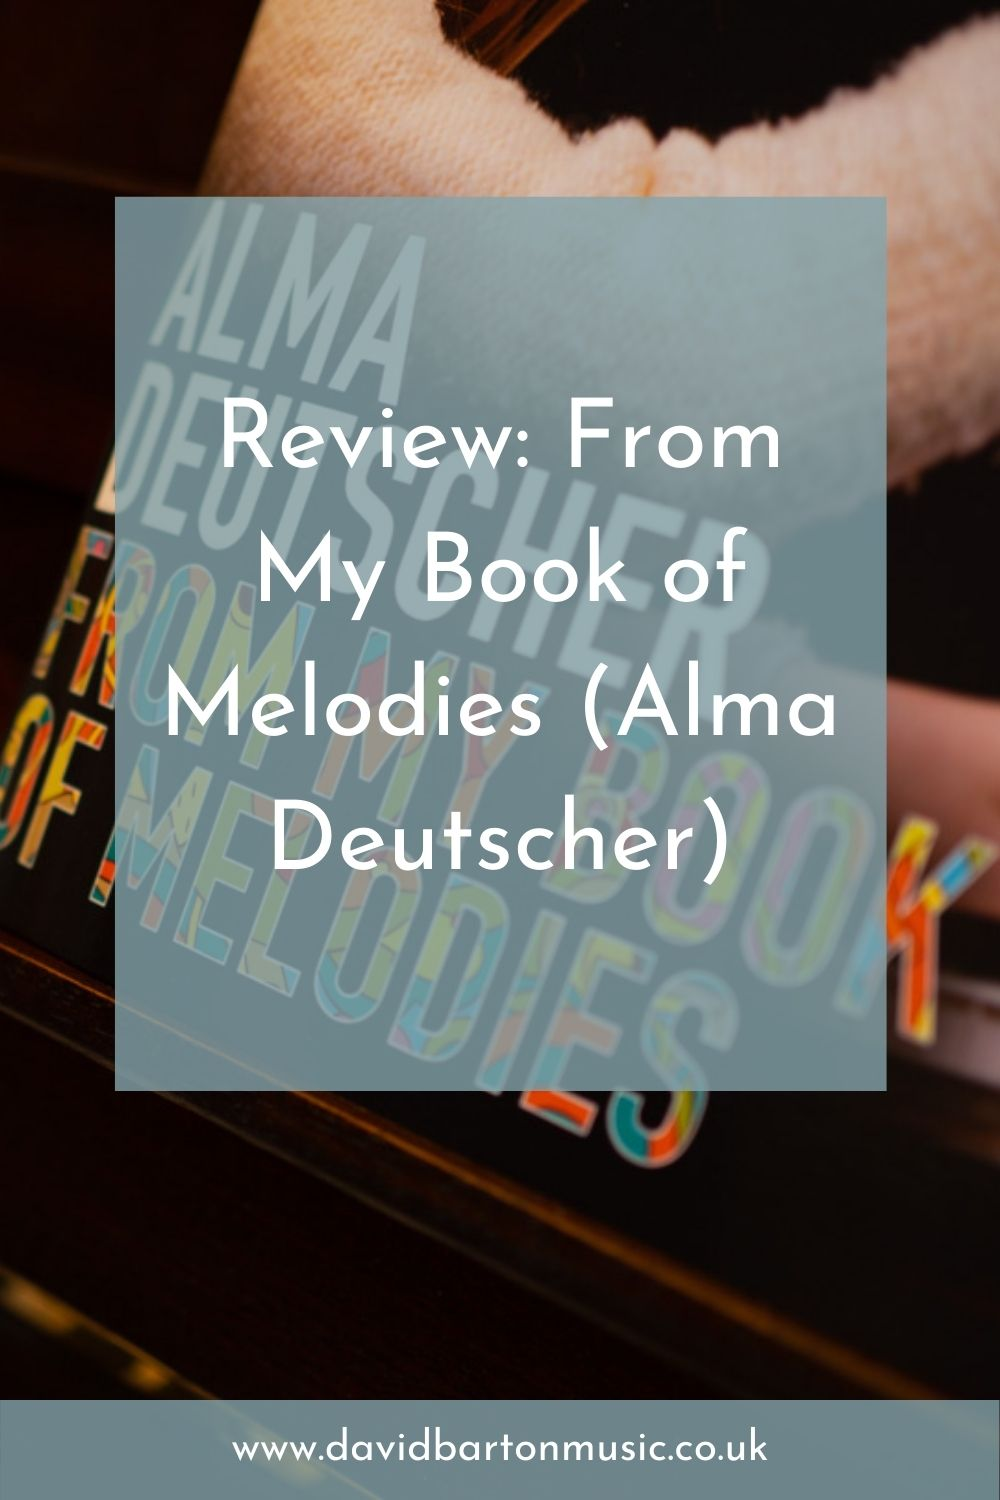 Review: From My Book of Melodies (Alma Deutscher) - Pinterest Graphic